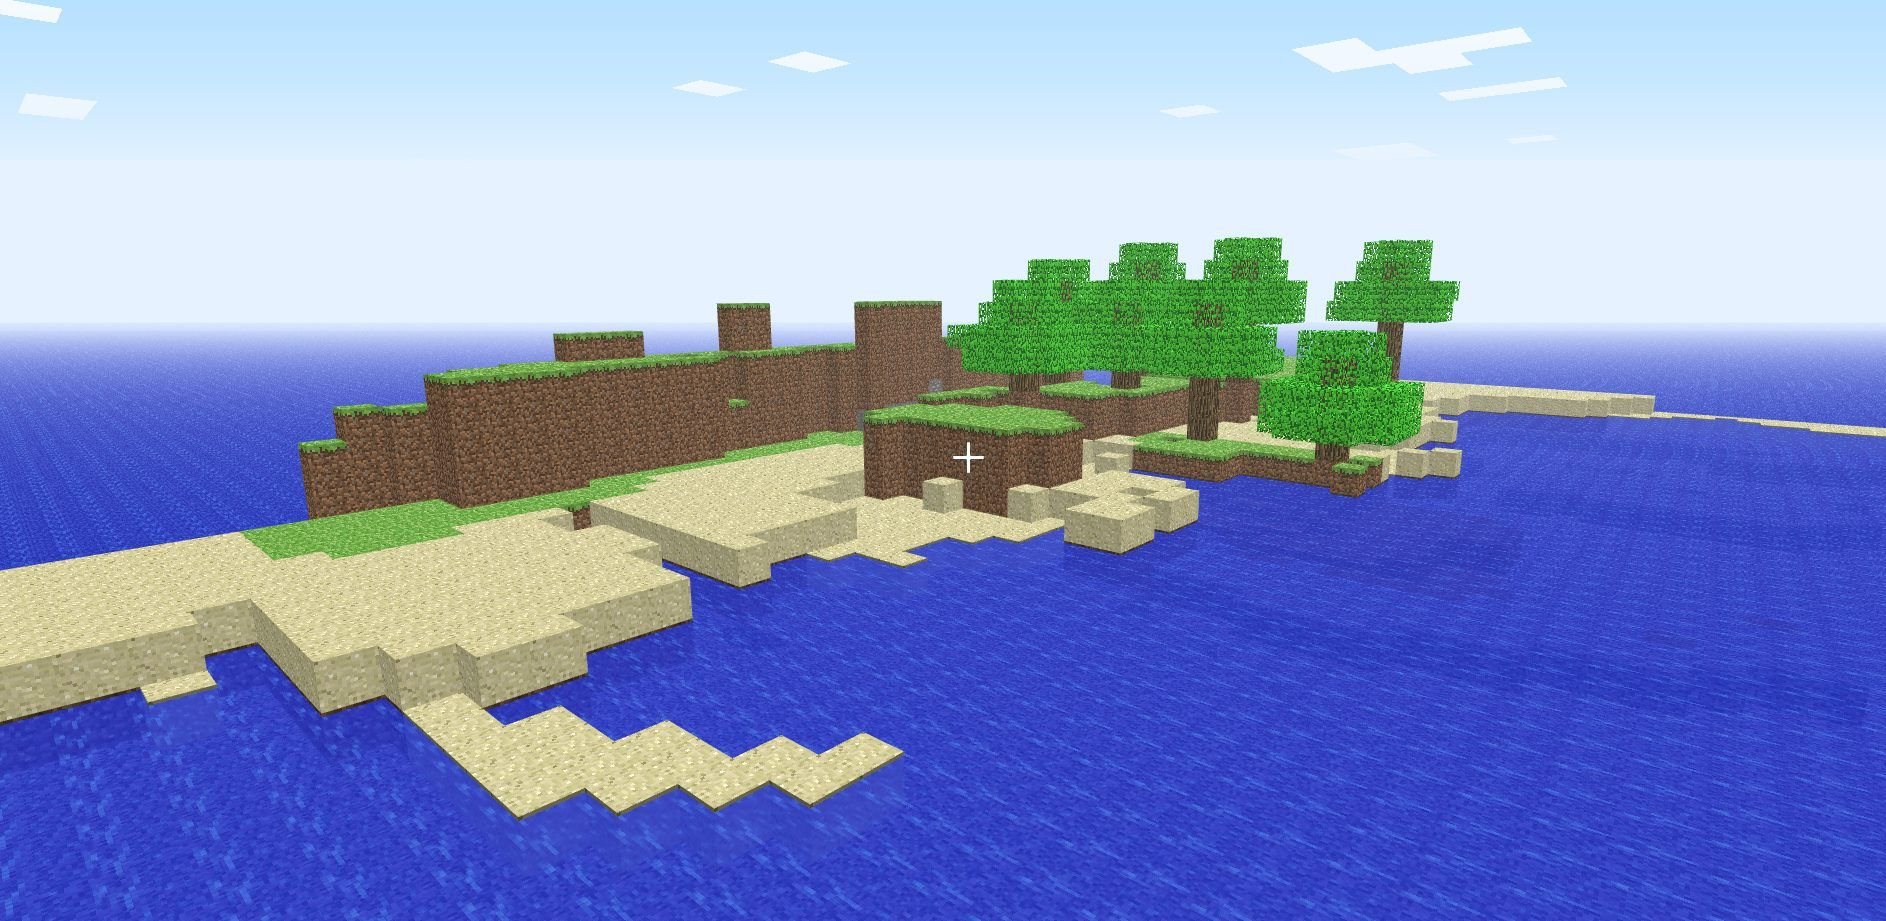 Minecraft Classic Is Available On Browsers For Free To ...